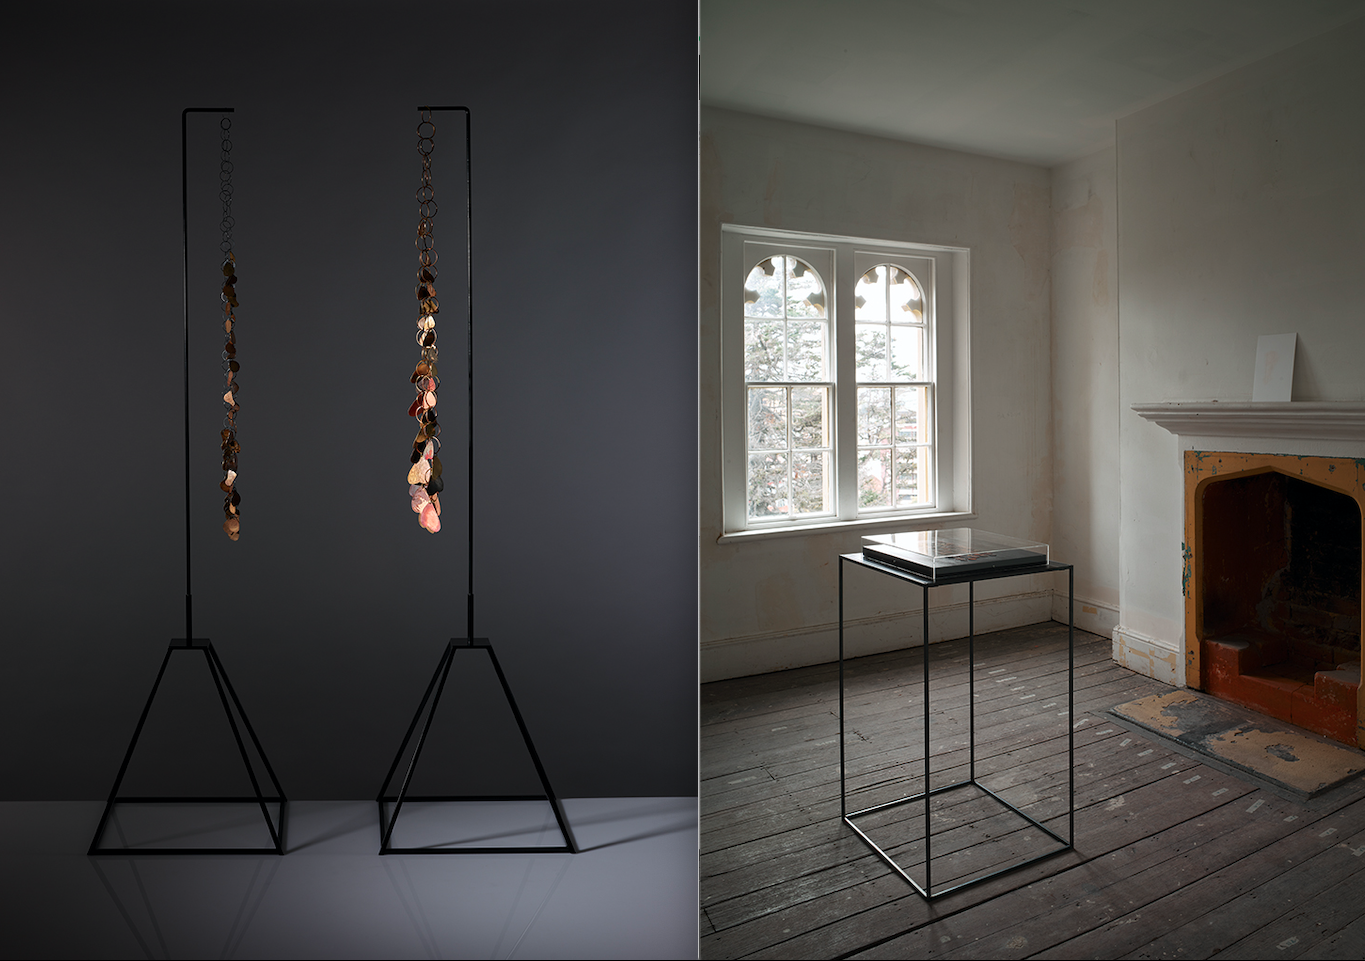 Stands displaying two strands of art jewellery (left) and a room with a display case, double windows and a fireplace (right)